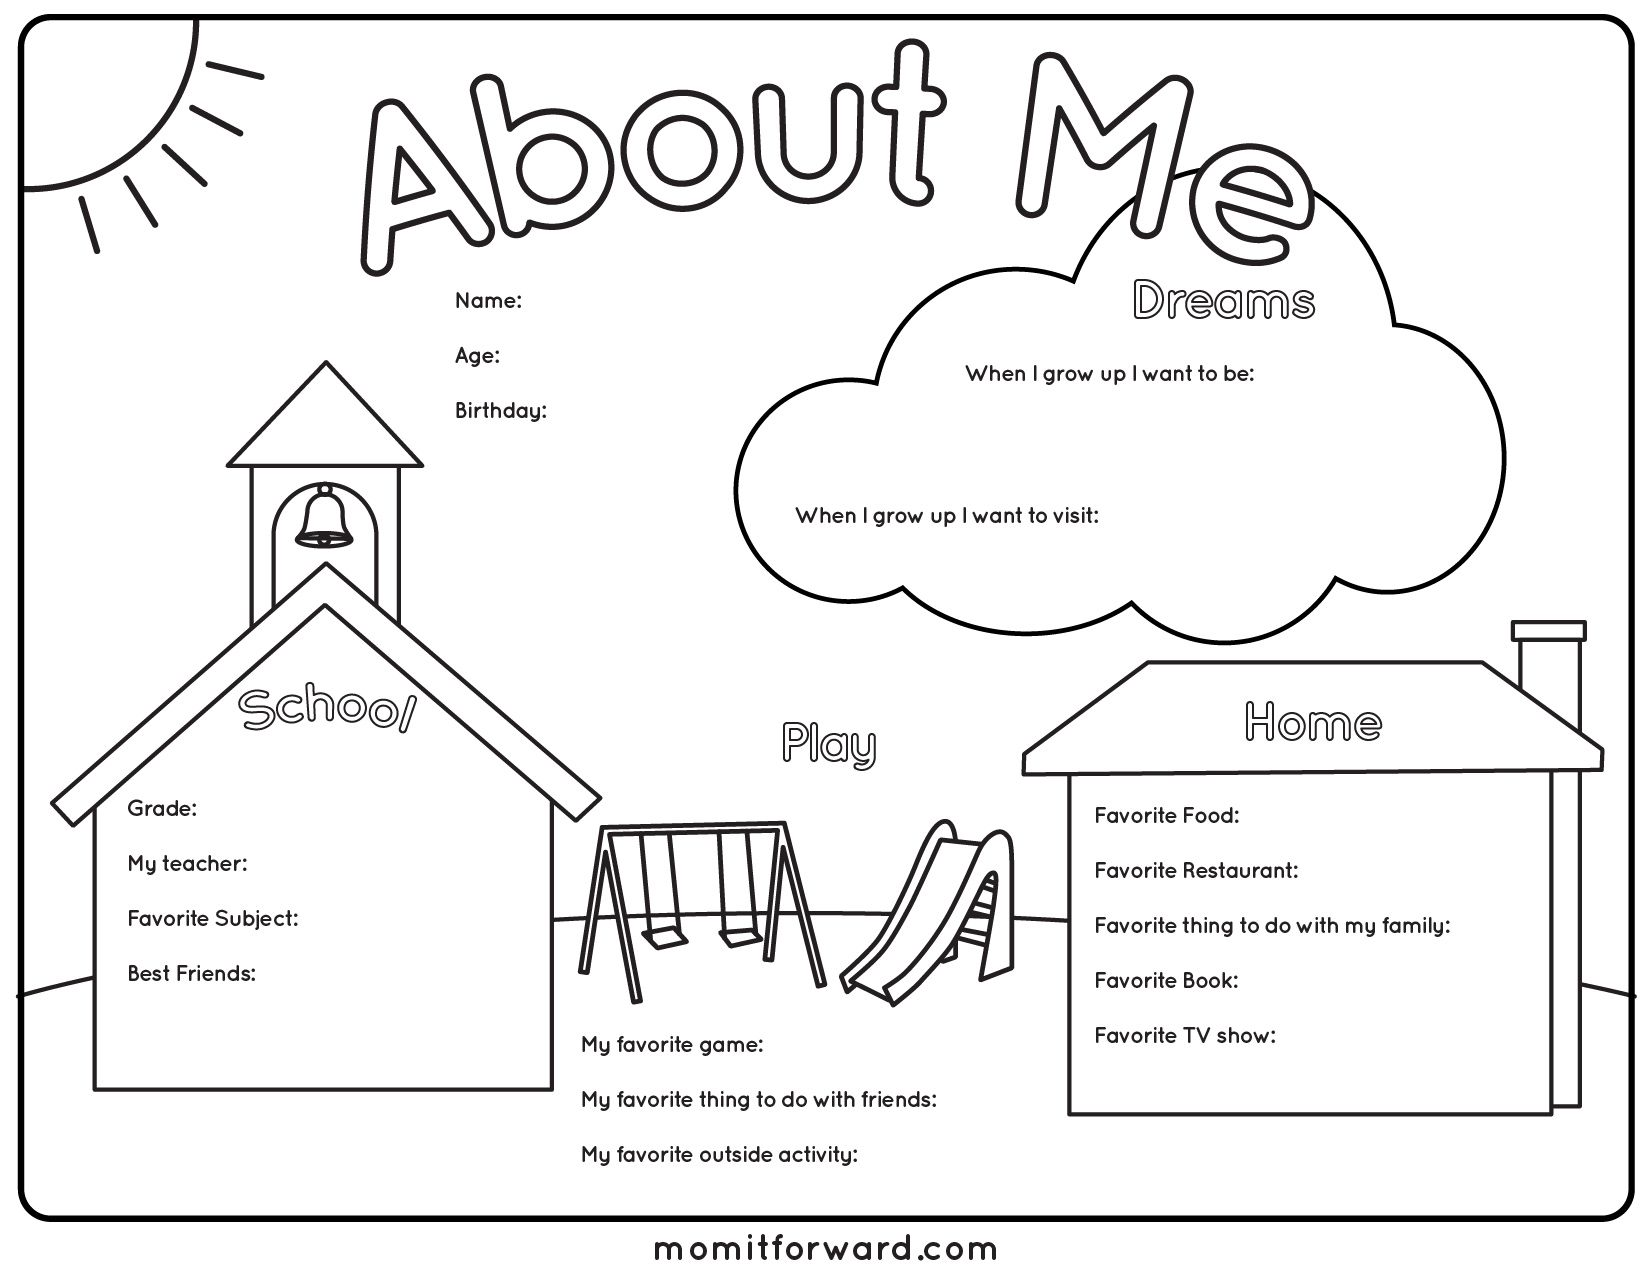 About Me Printable